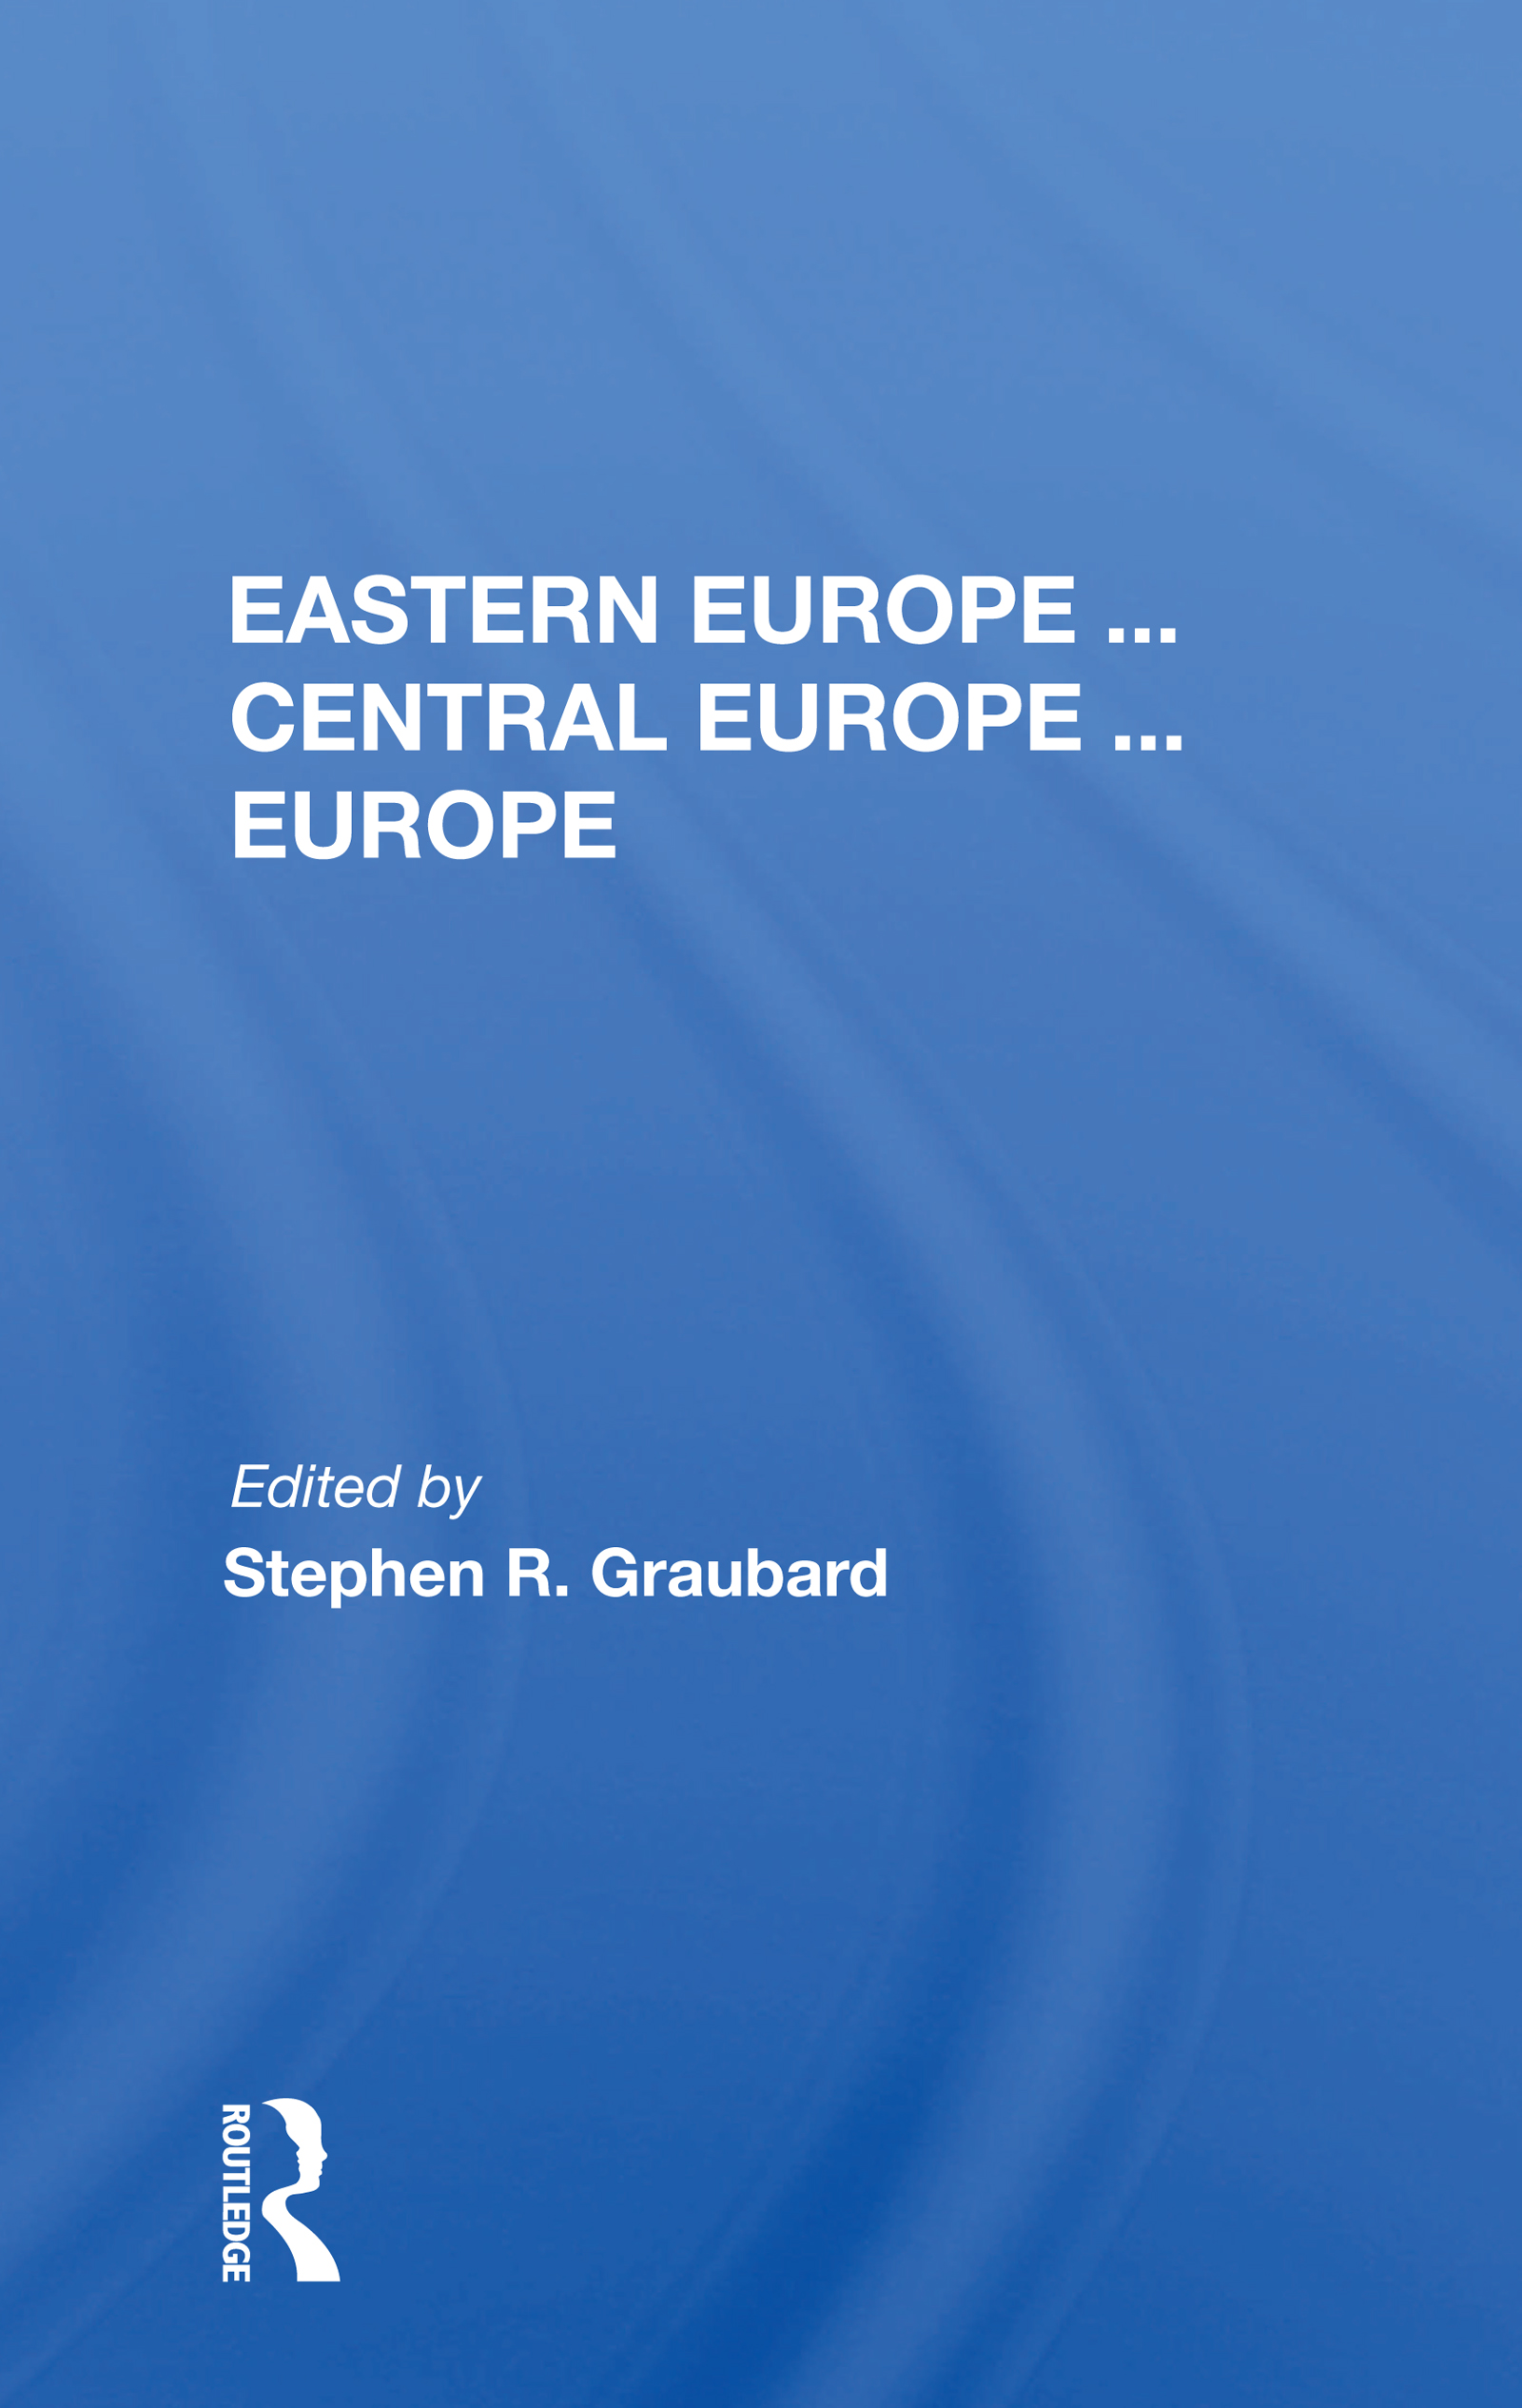 Eastern Europe ... Central Europe ... Europe